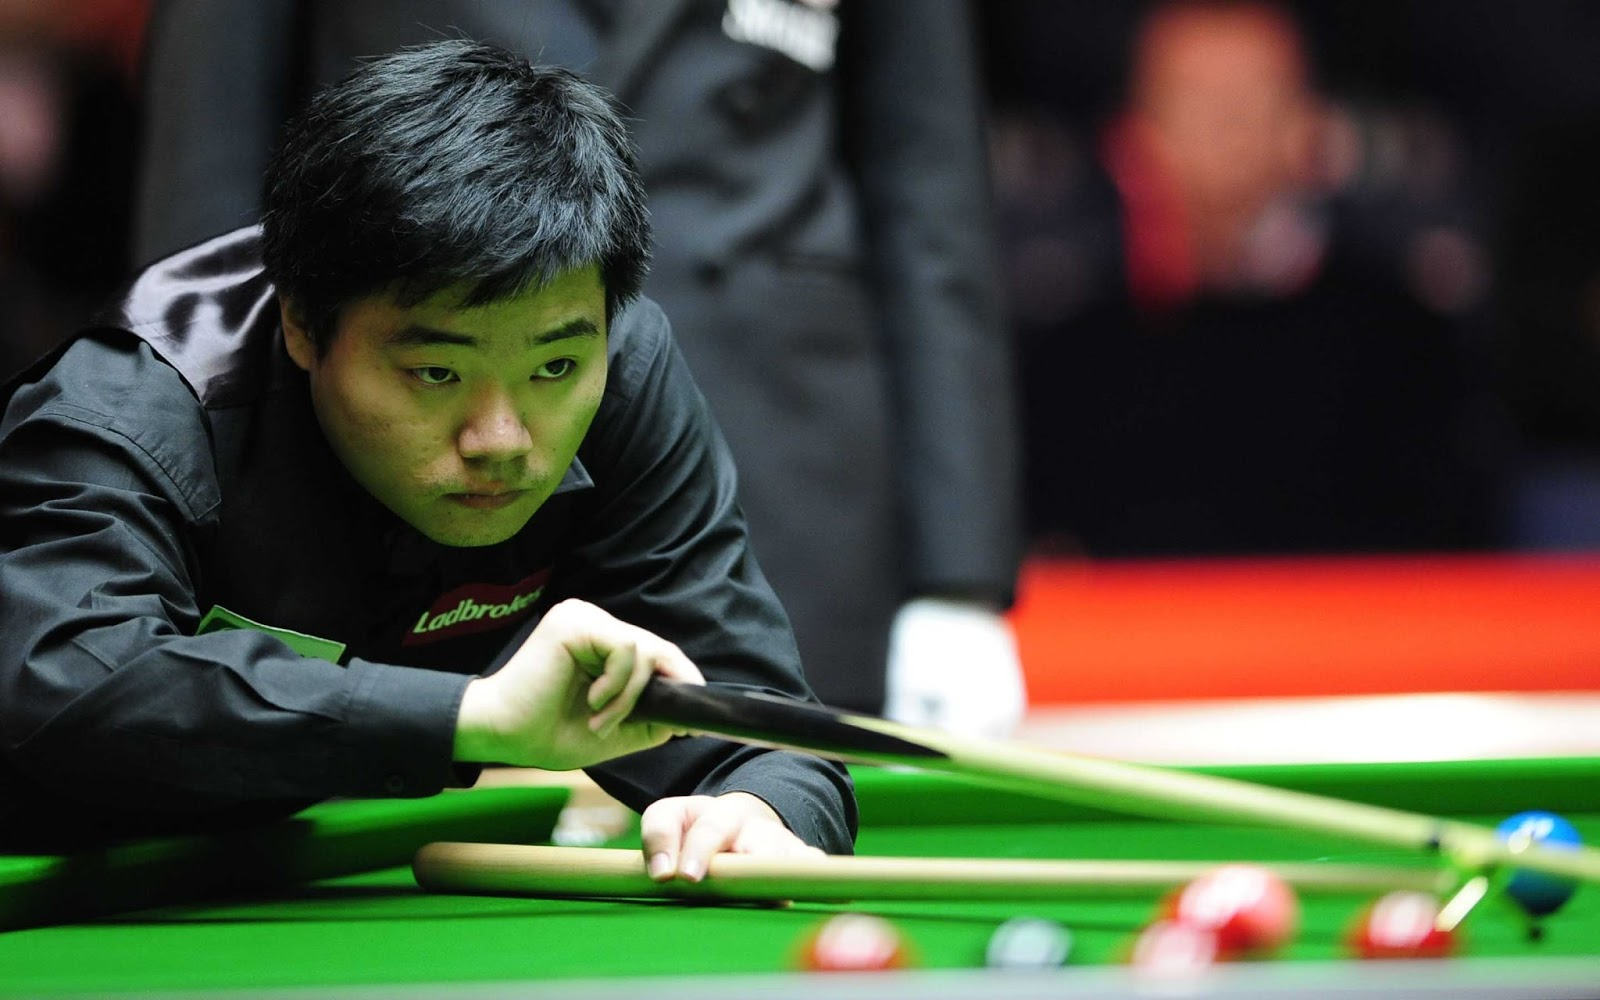 wallpapers in hd snooker - photo #37